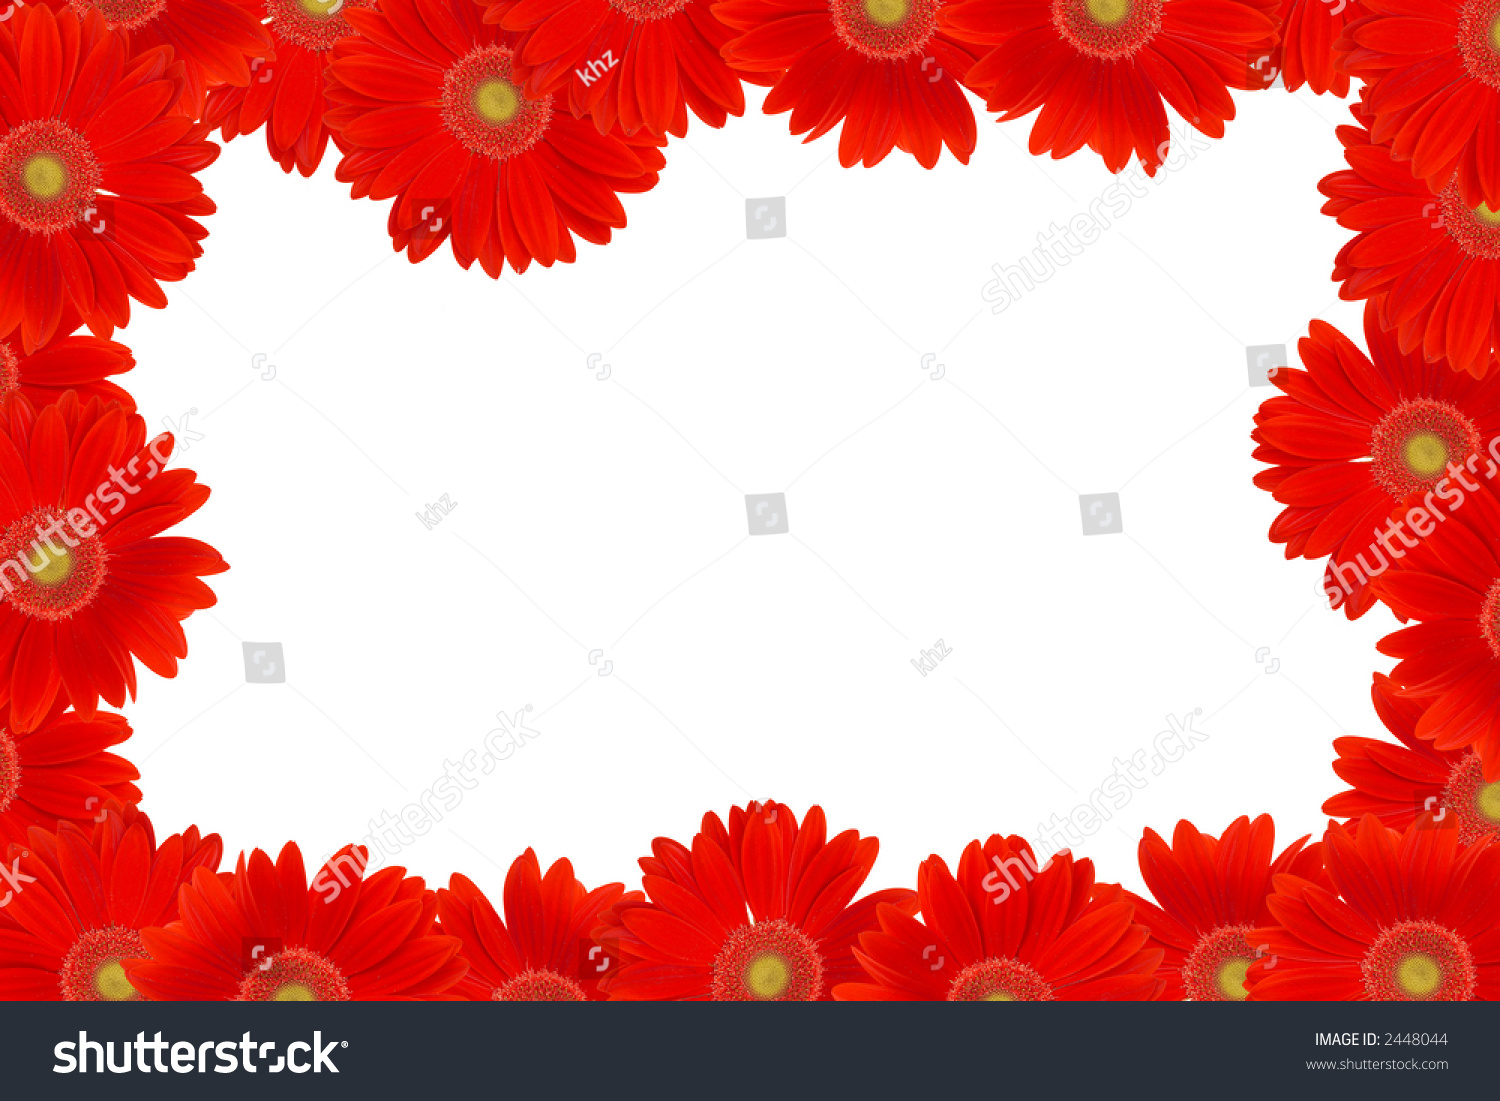 Frame red daisy flowers space messages stock photo edit now frame with red daisy flowers space for messages izmirmasajfo